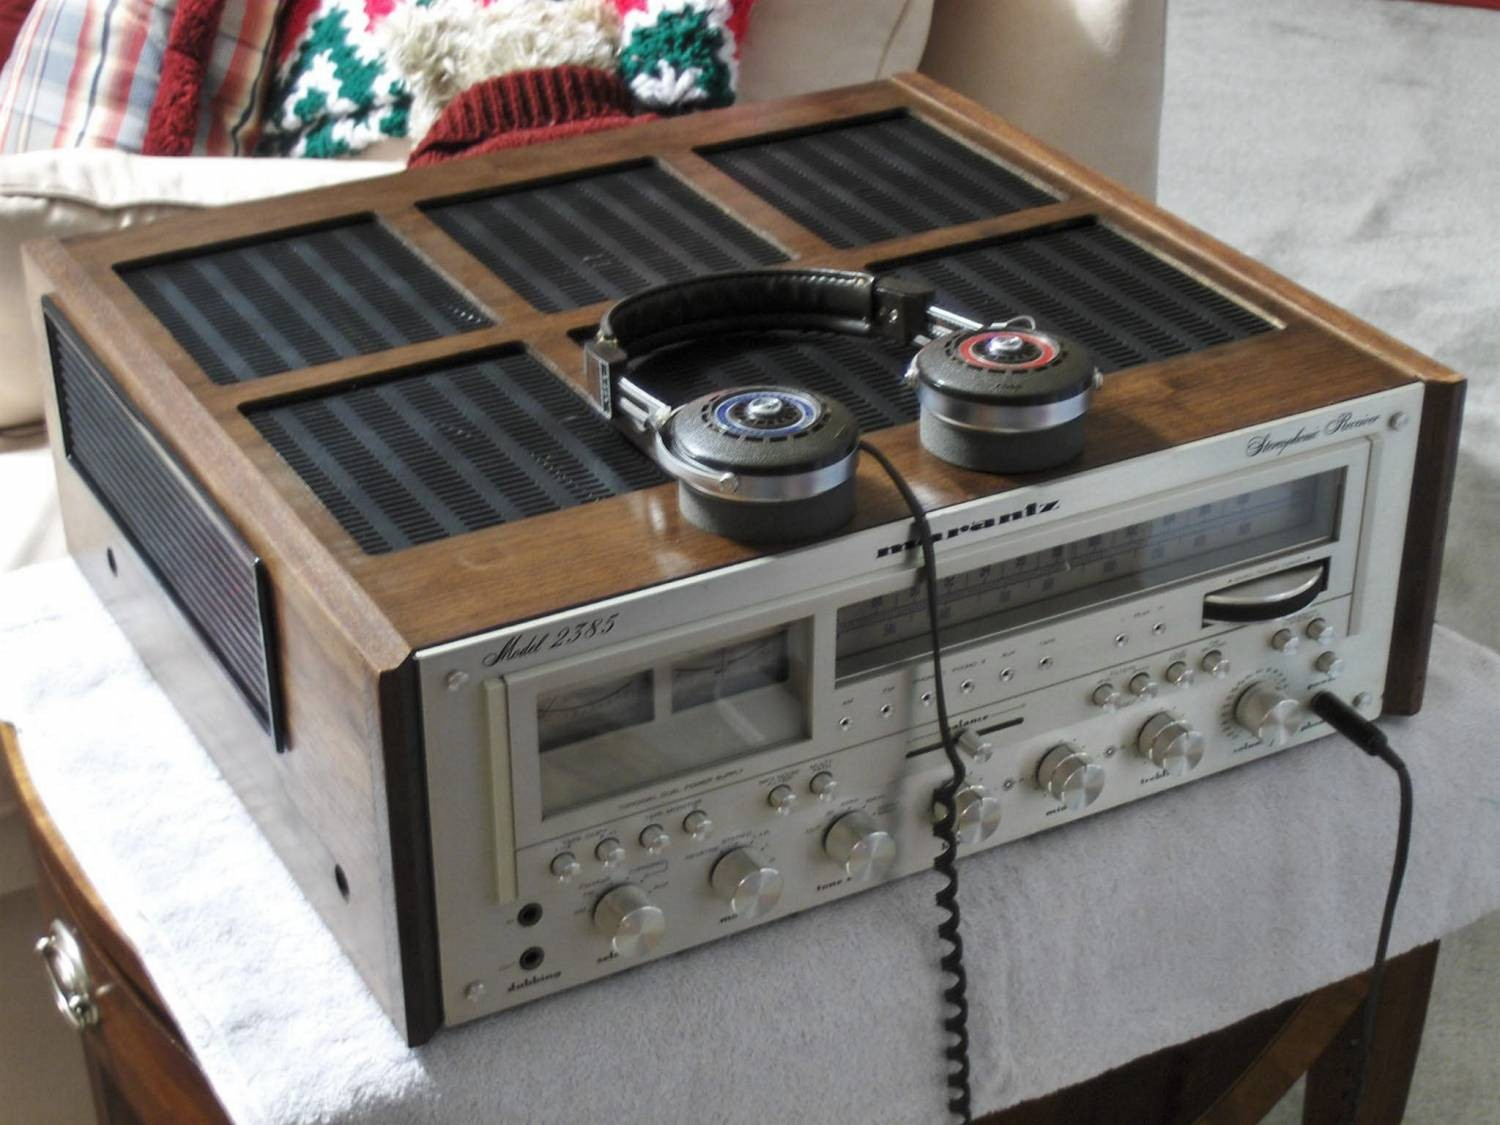 Marantz 2385 Receiver wearing WC-124 Walnut Case.